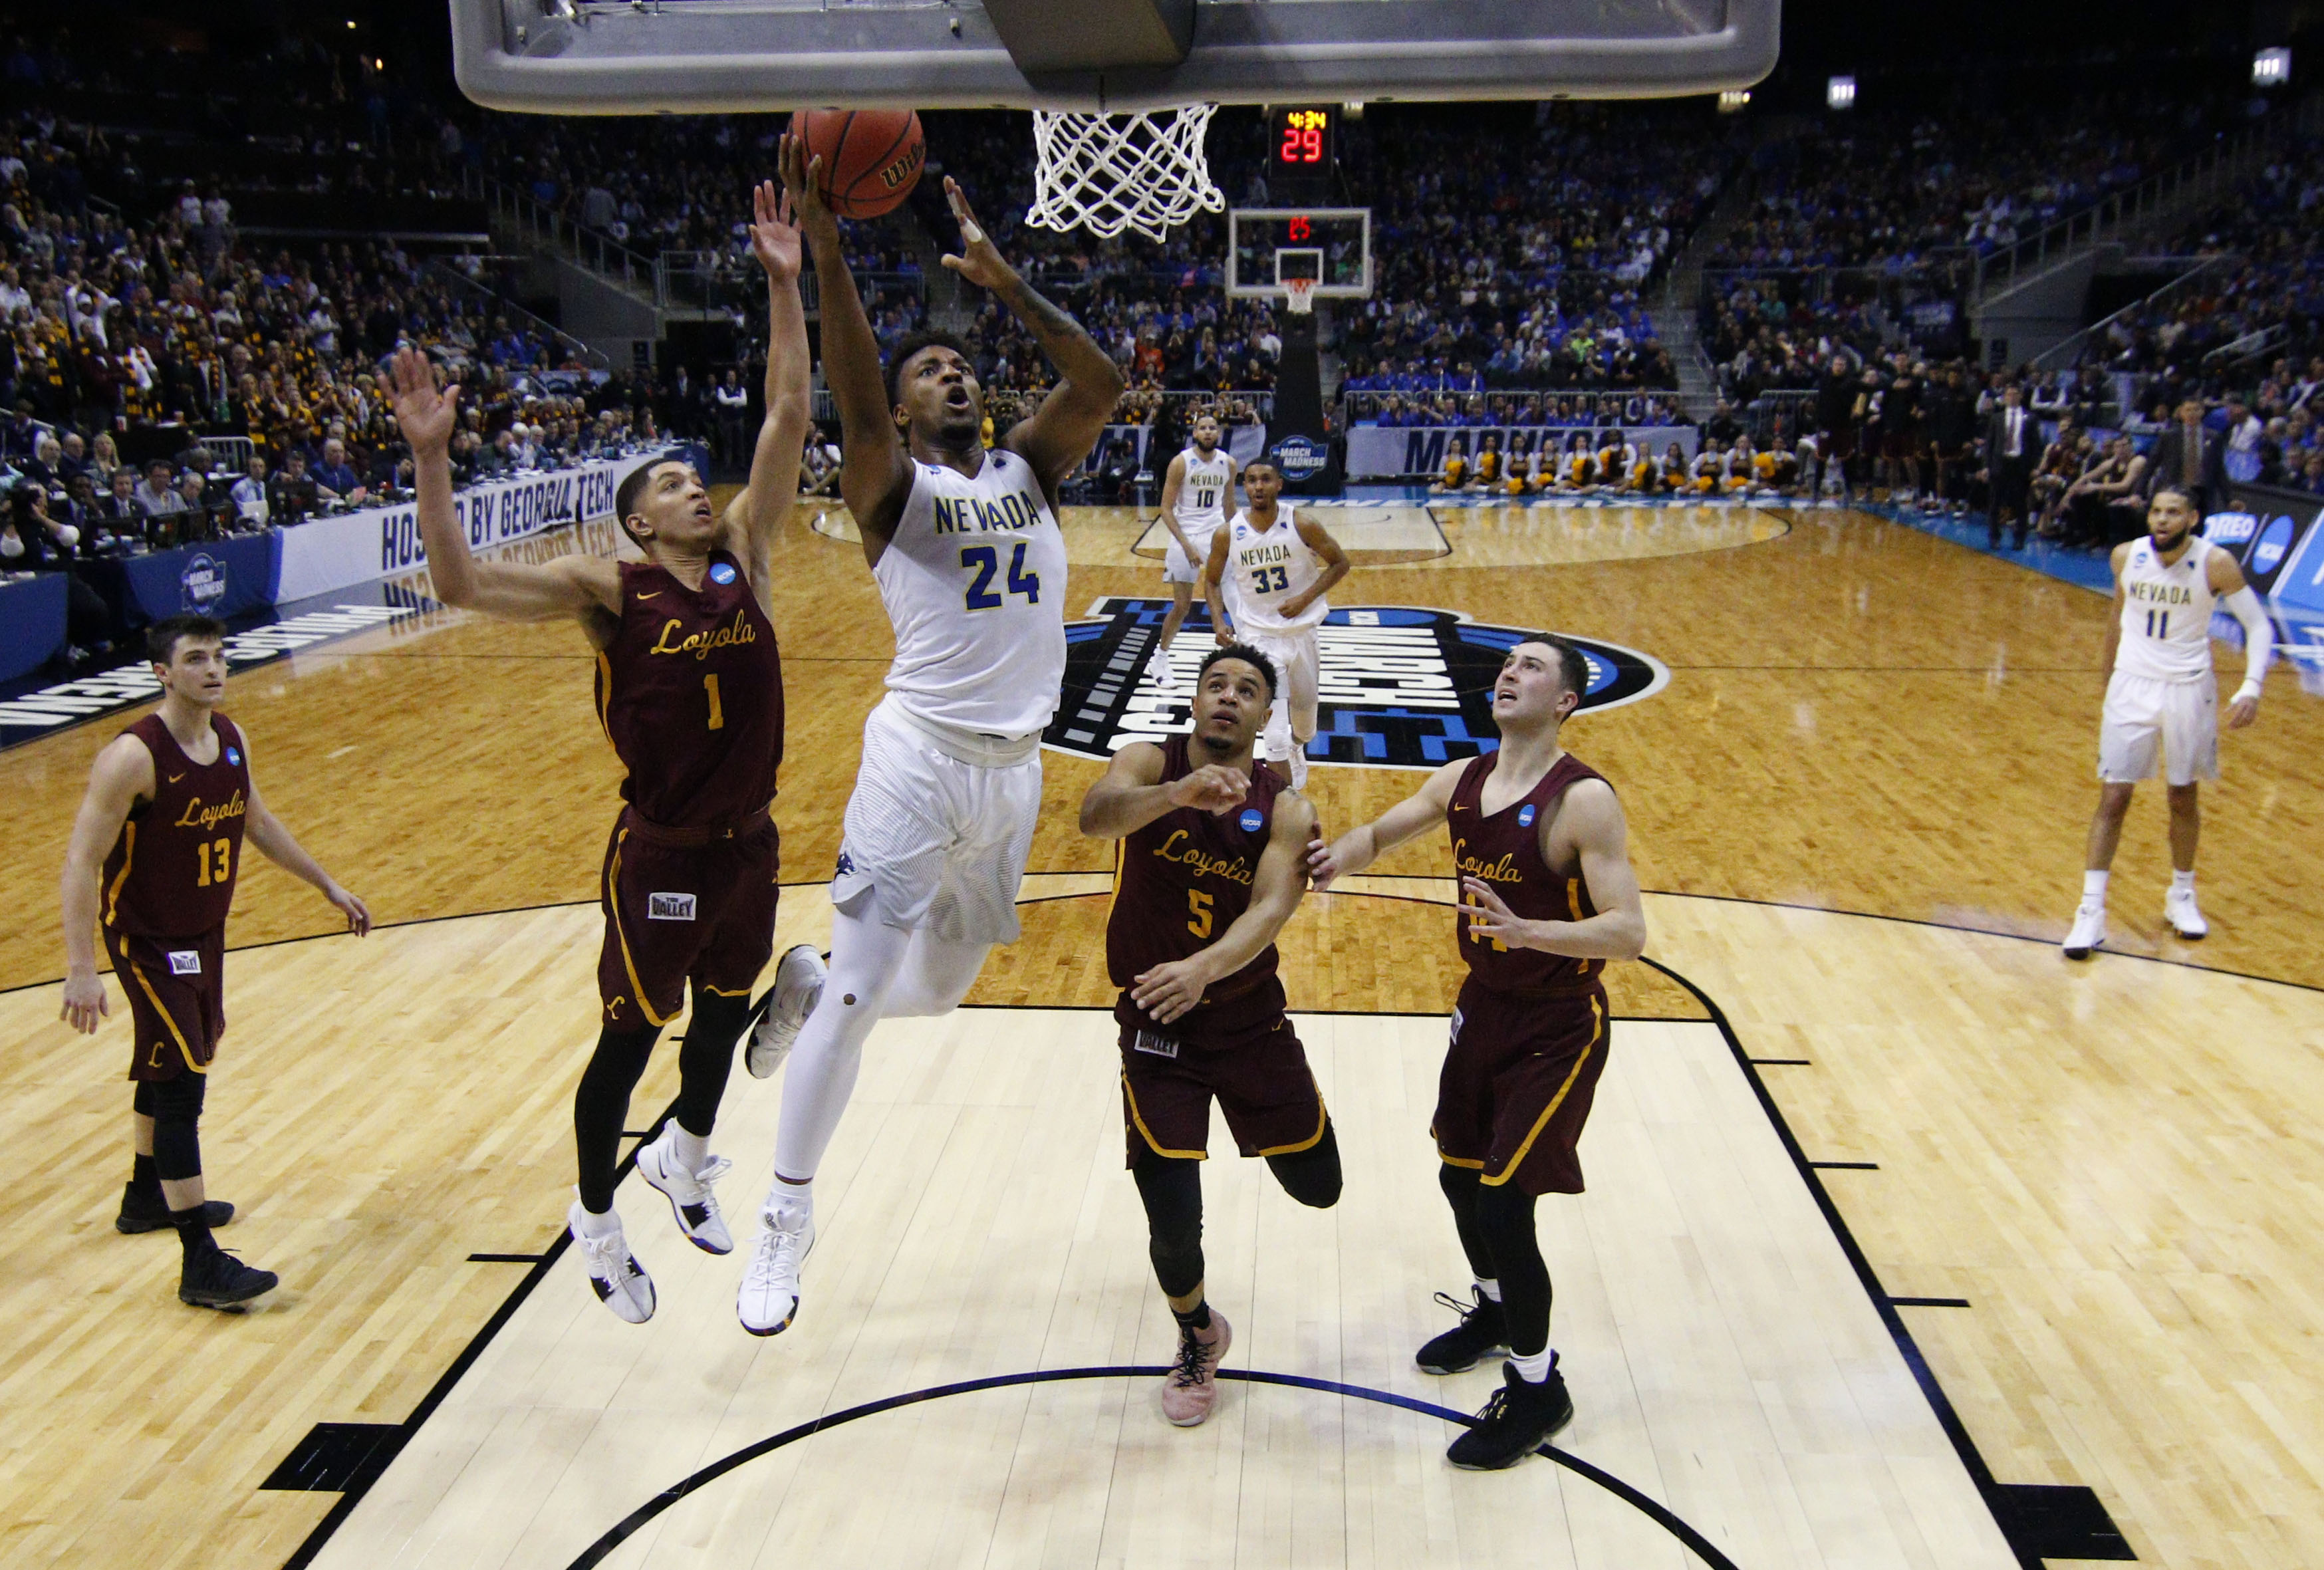 Will Nevada dominate the Mountain West Conference again? 11